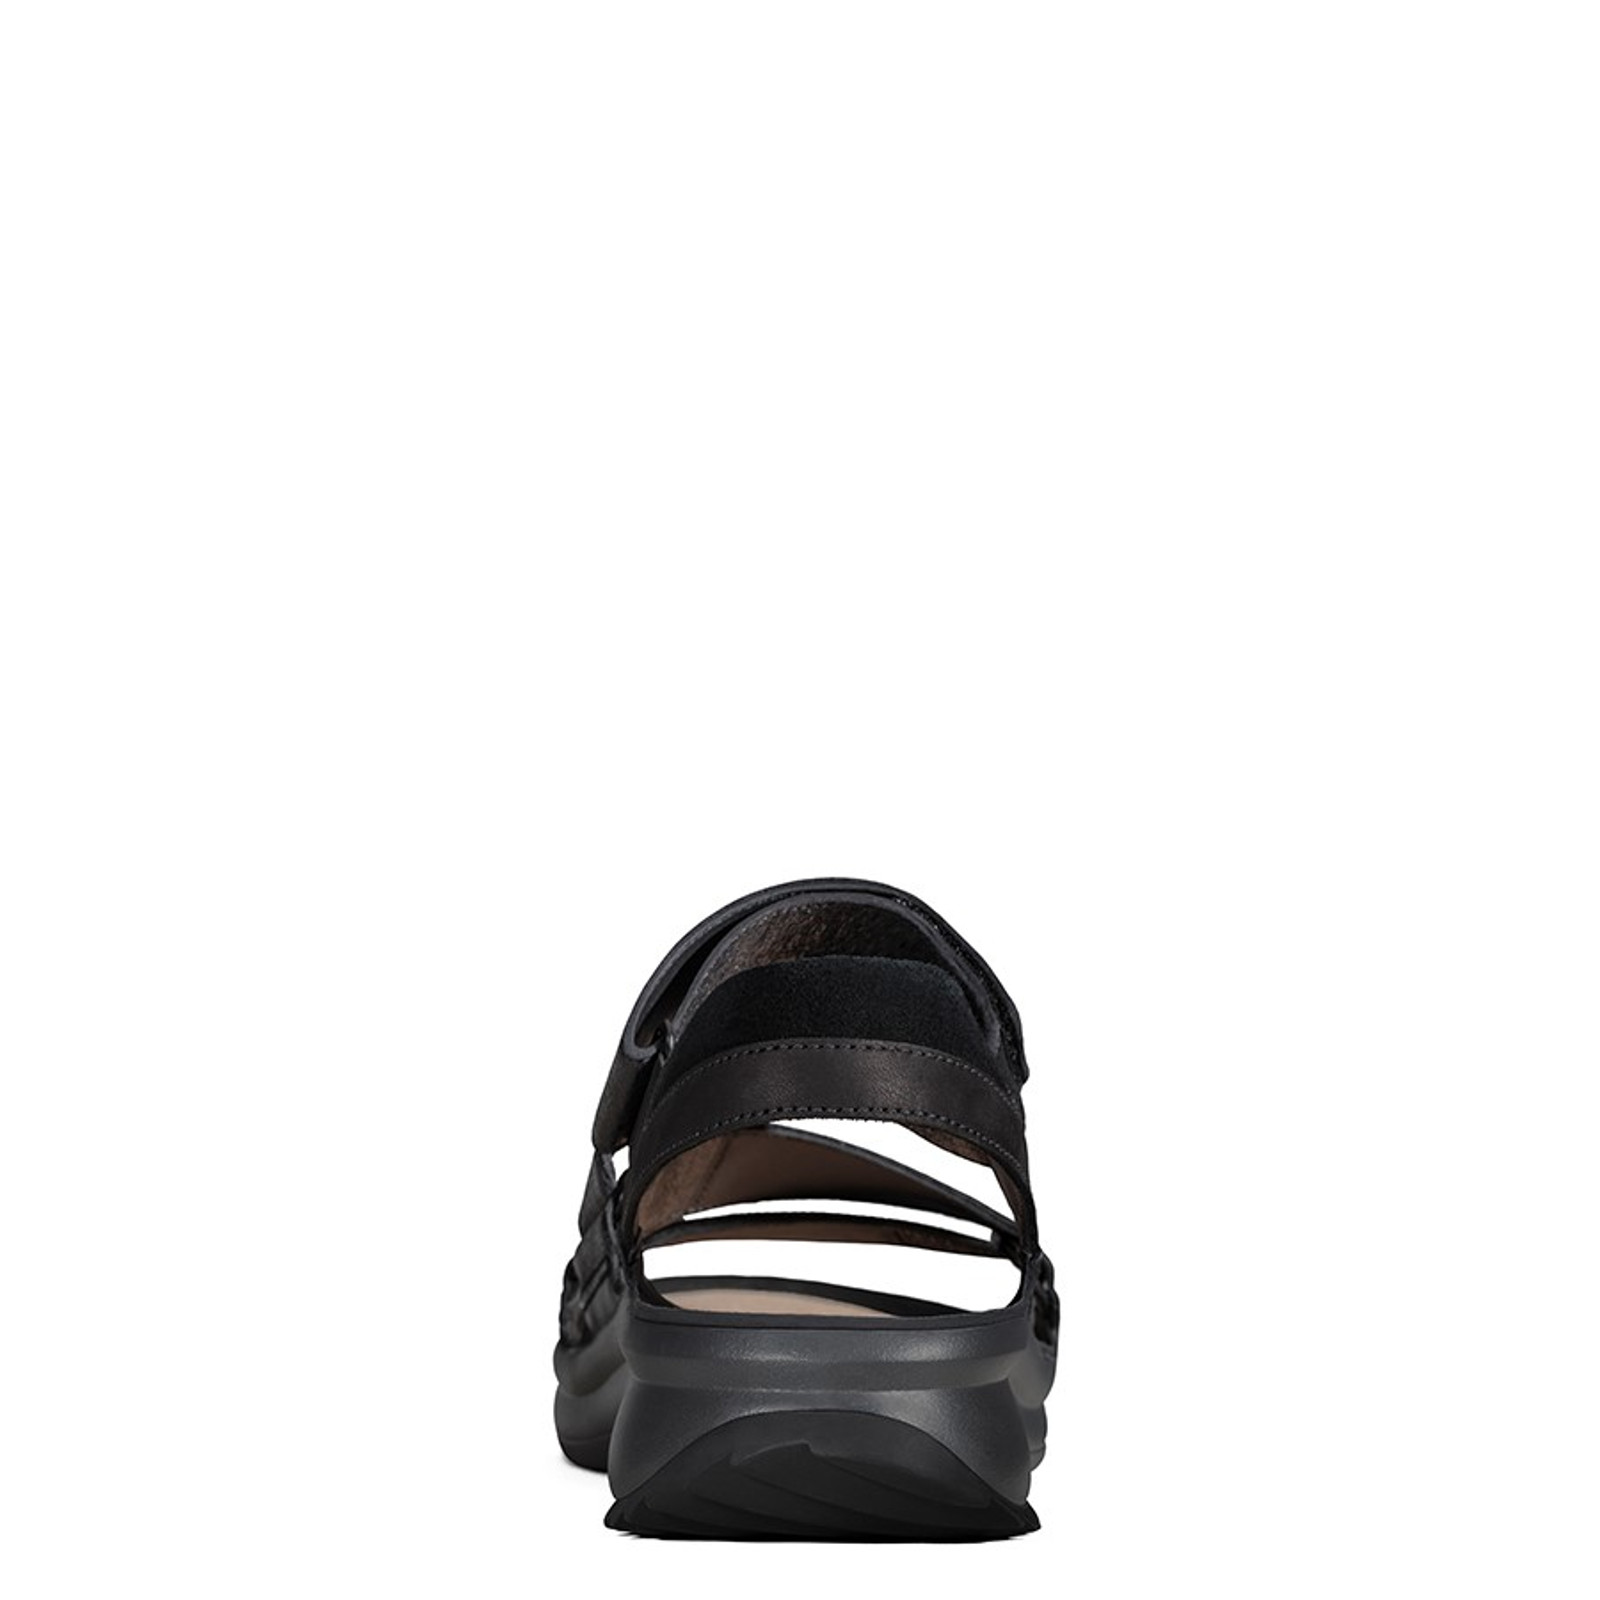 Clarks Womens TRI EASE Black Interest Leather